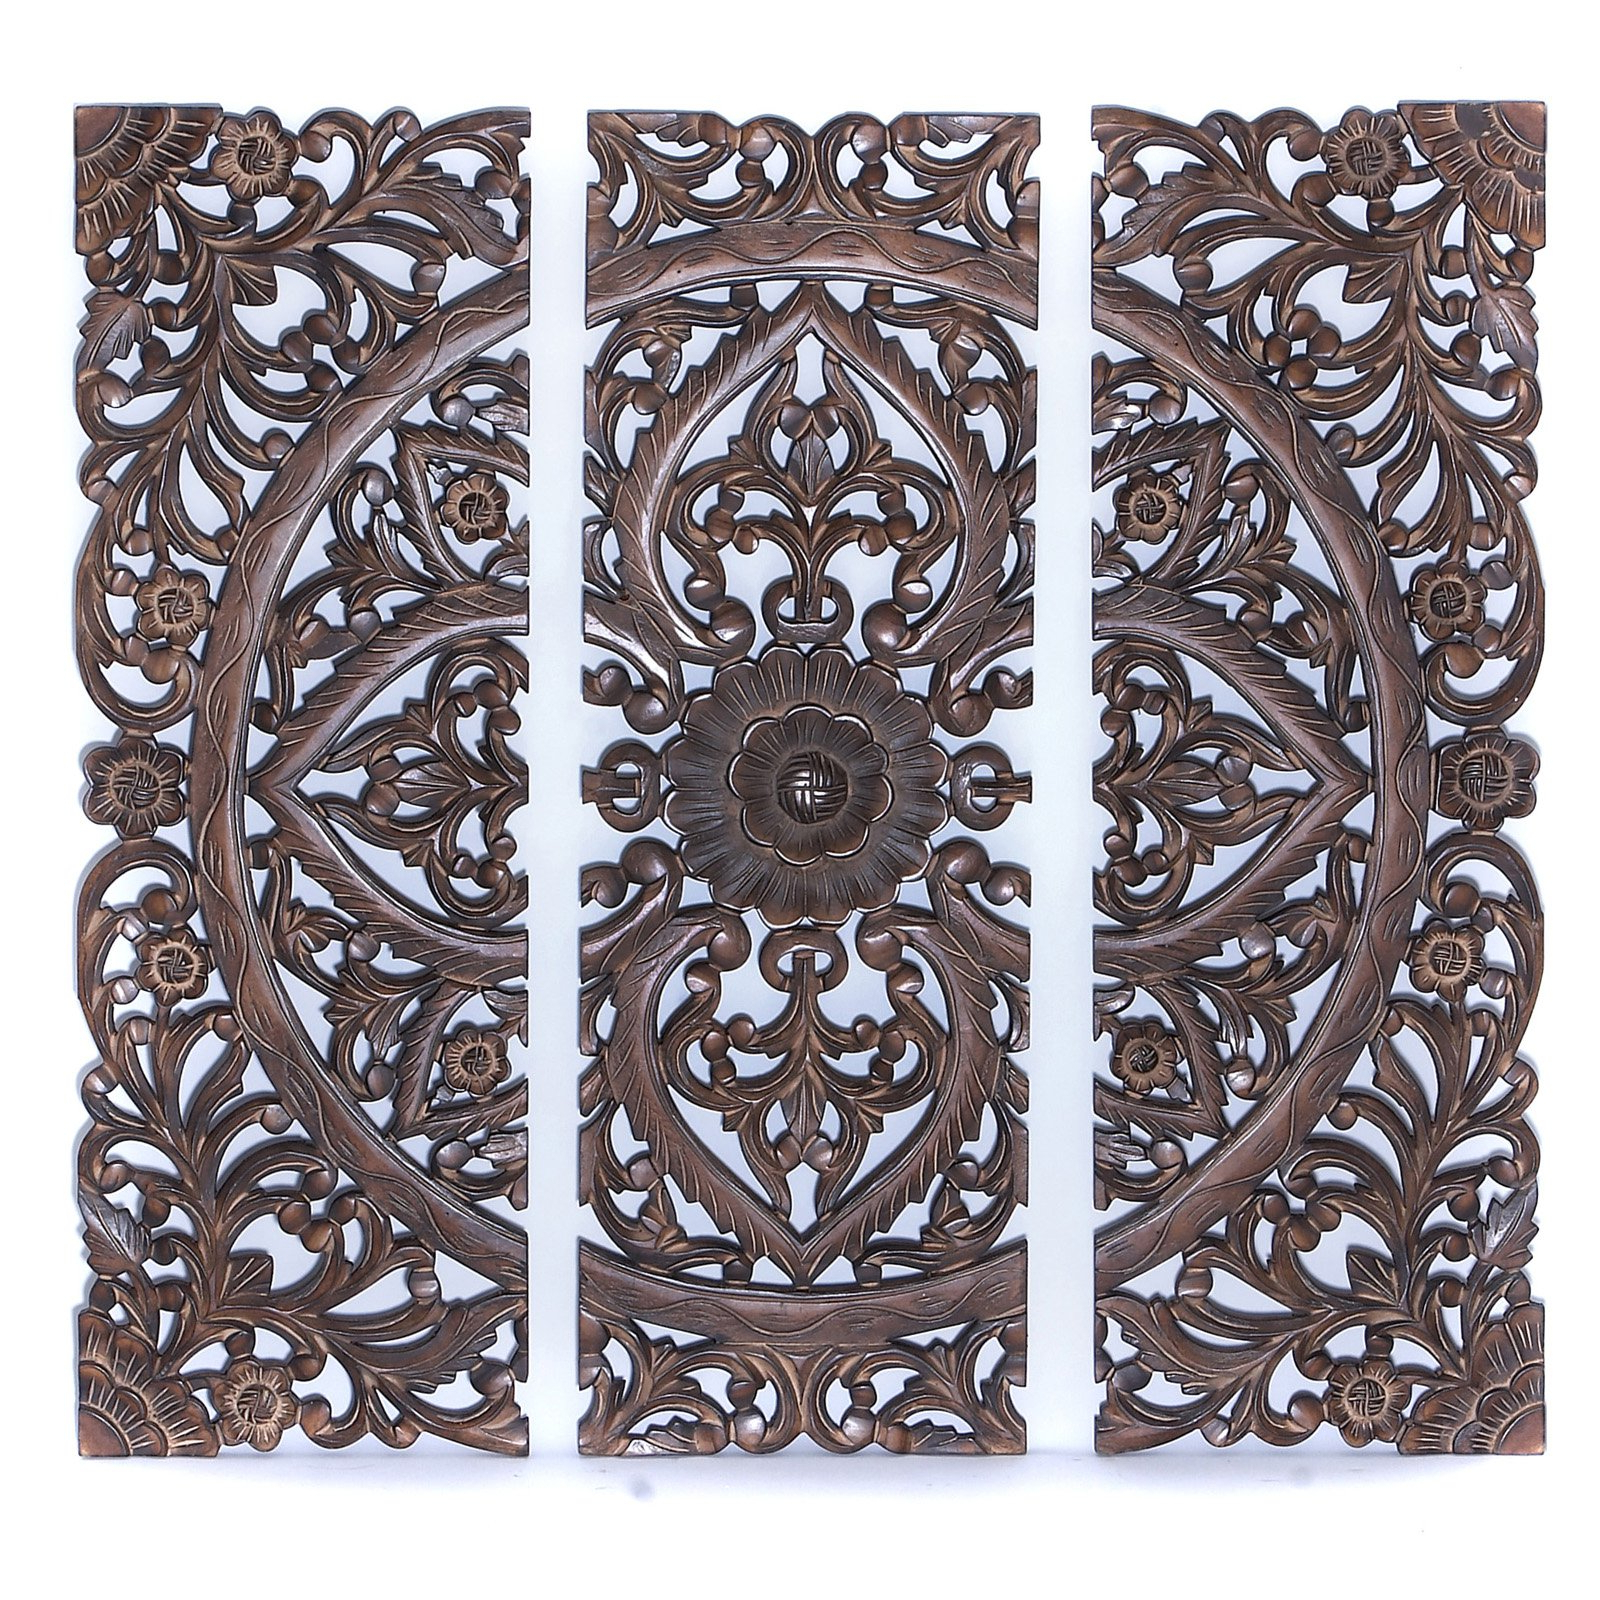 """Well Liked Benzara 14404 36""""h Modern Wood Wall Panel With Dark Finish (set Of 3) Inside 3 Piece Carved Ornate Wall Décor Set (View 15 of 20)"""